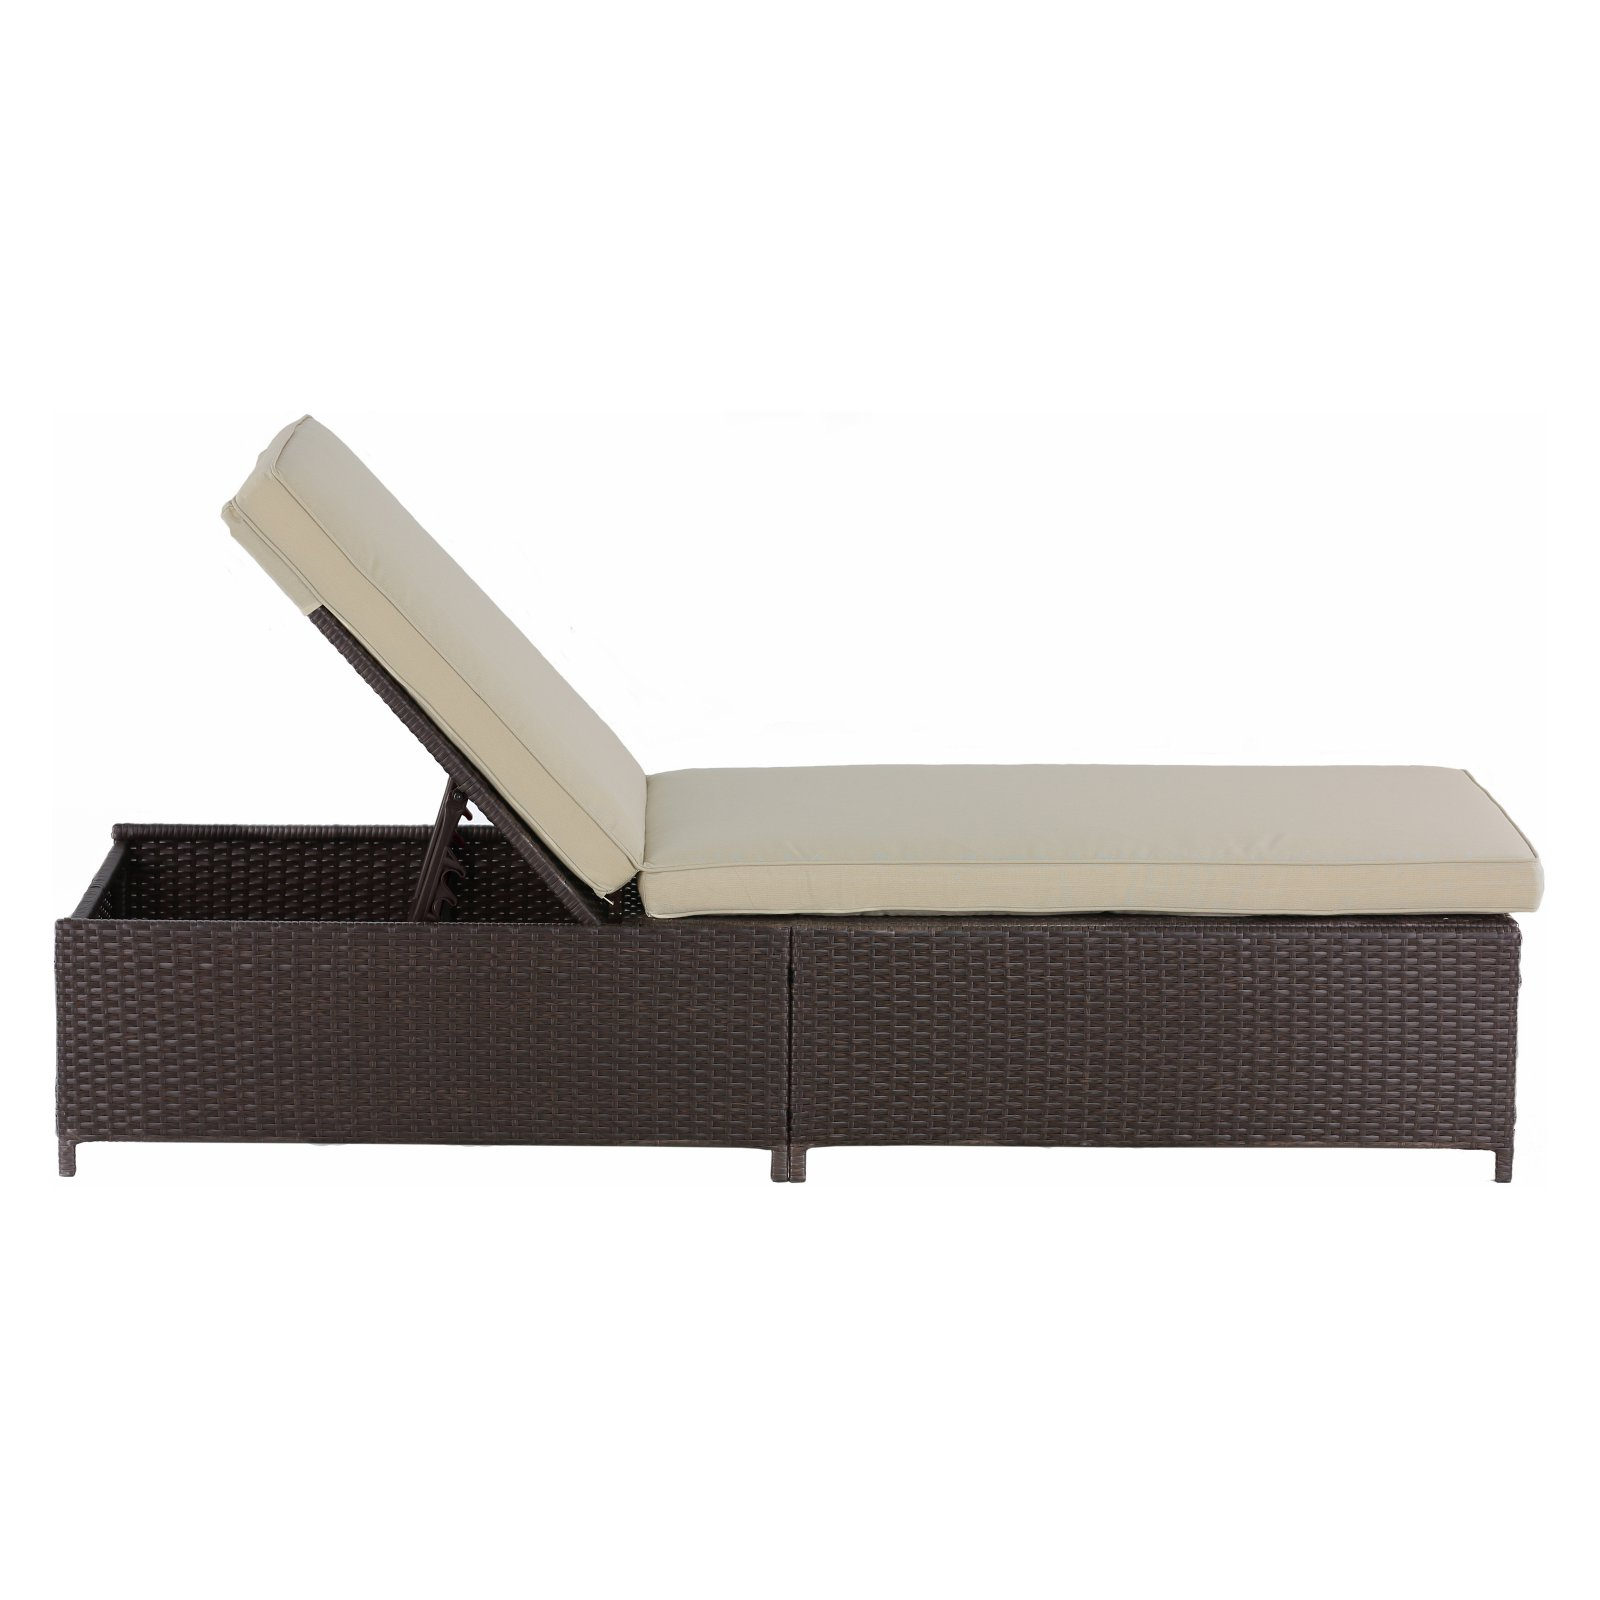 Serta Laguna Outdoor Storage Chaise Lounge Brown Wicker by Millwork Holdings Co., Inc.